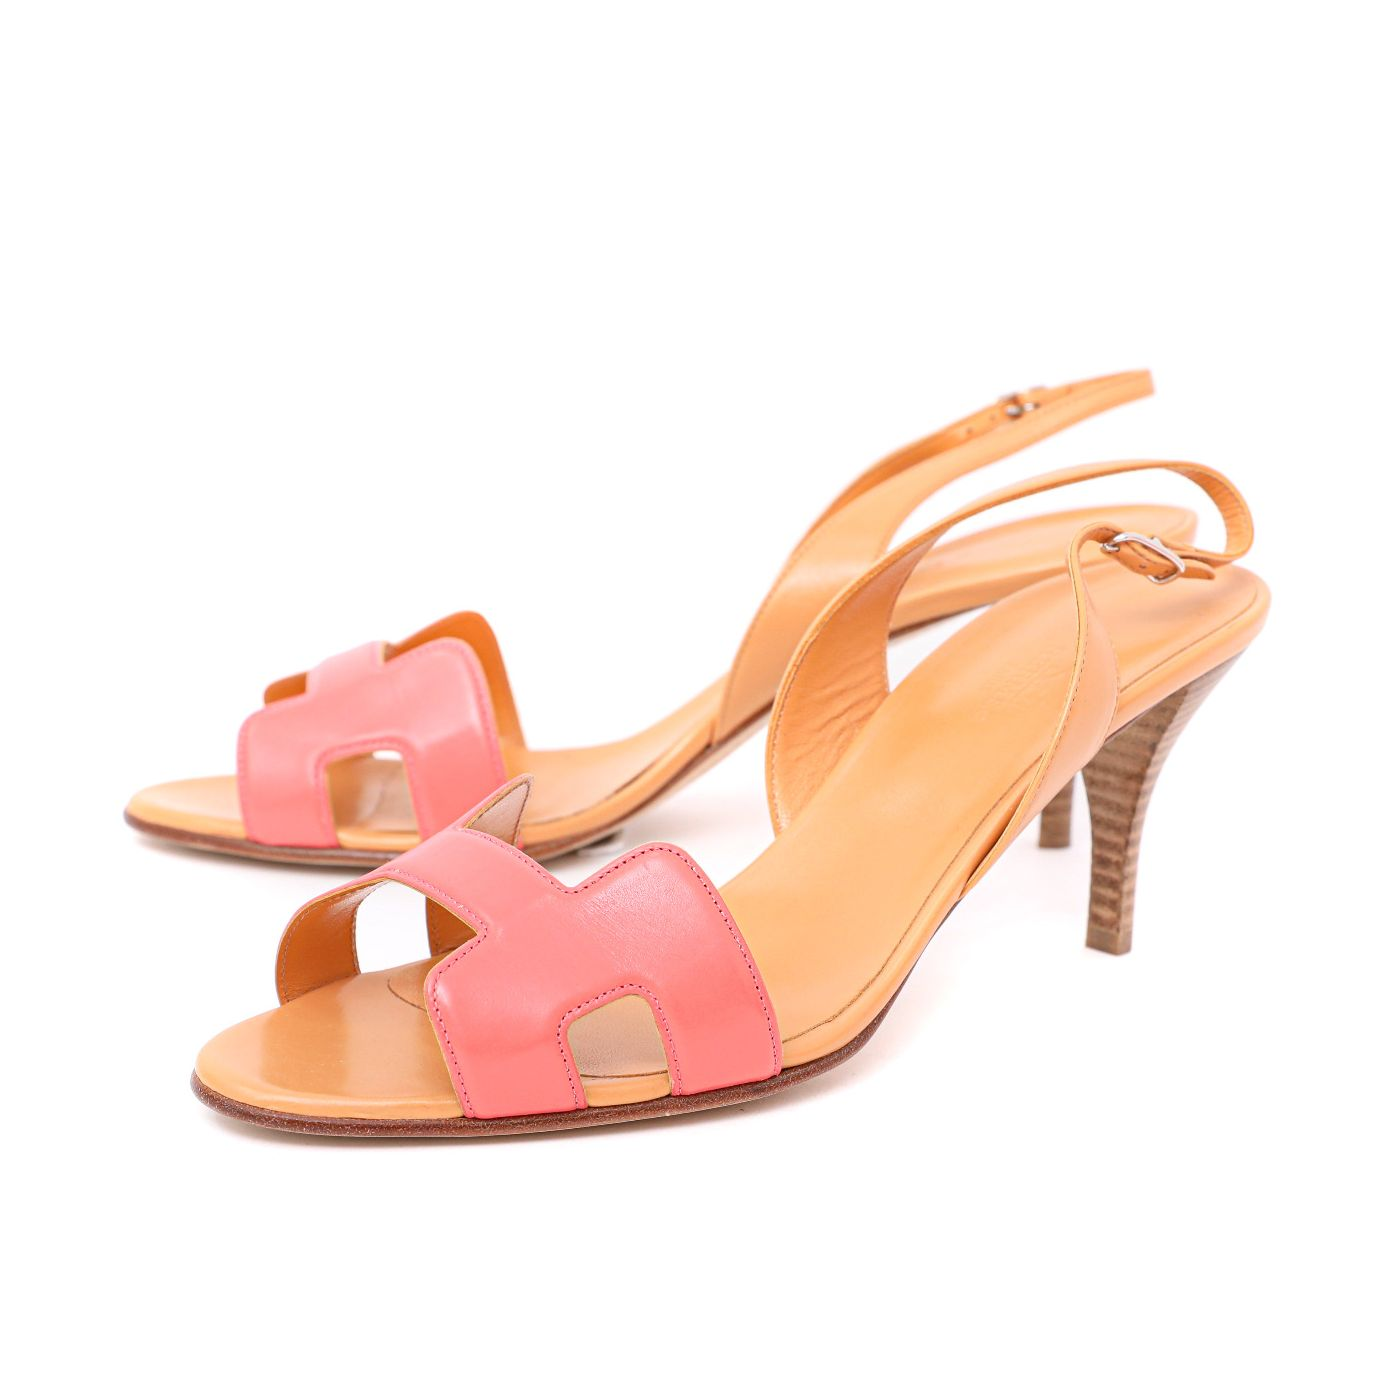 Hermes Bicolor Night 70 Sandals 41